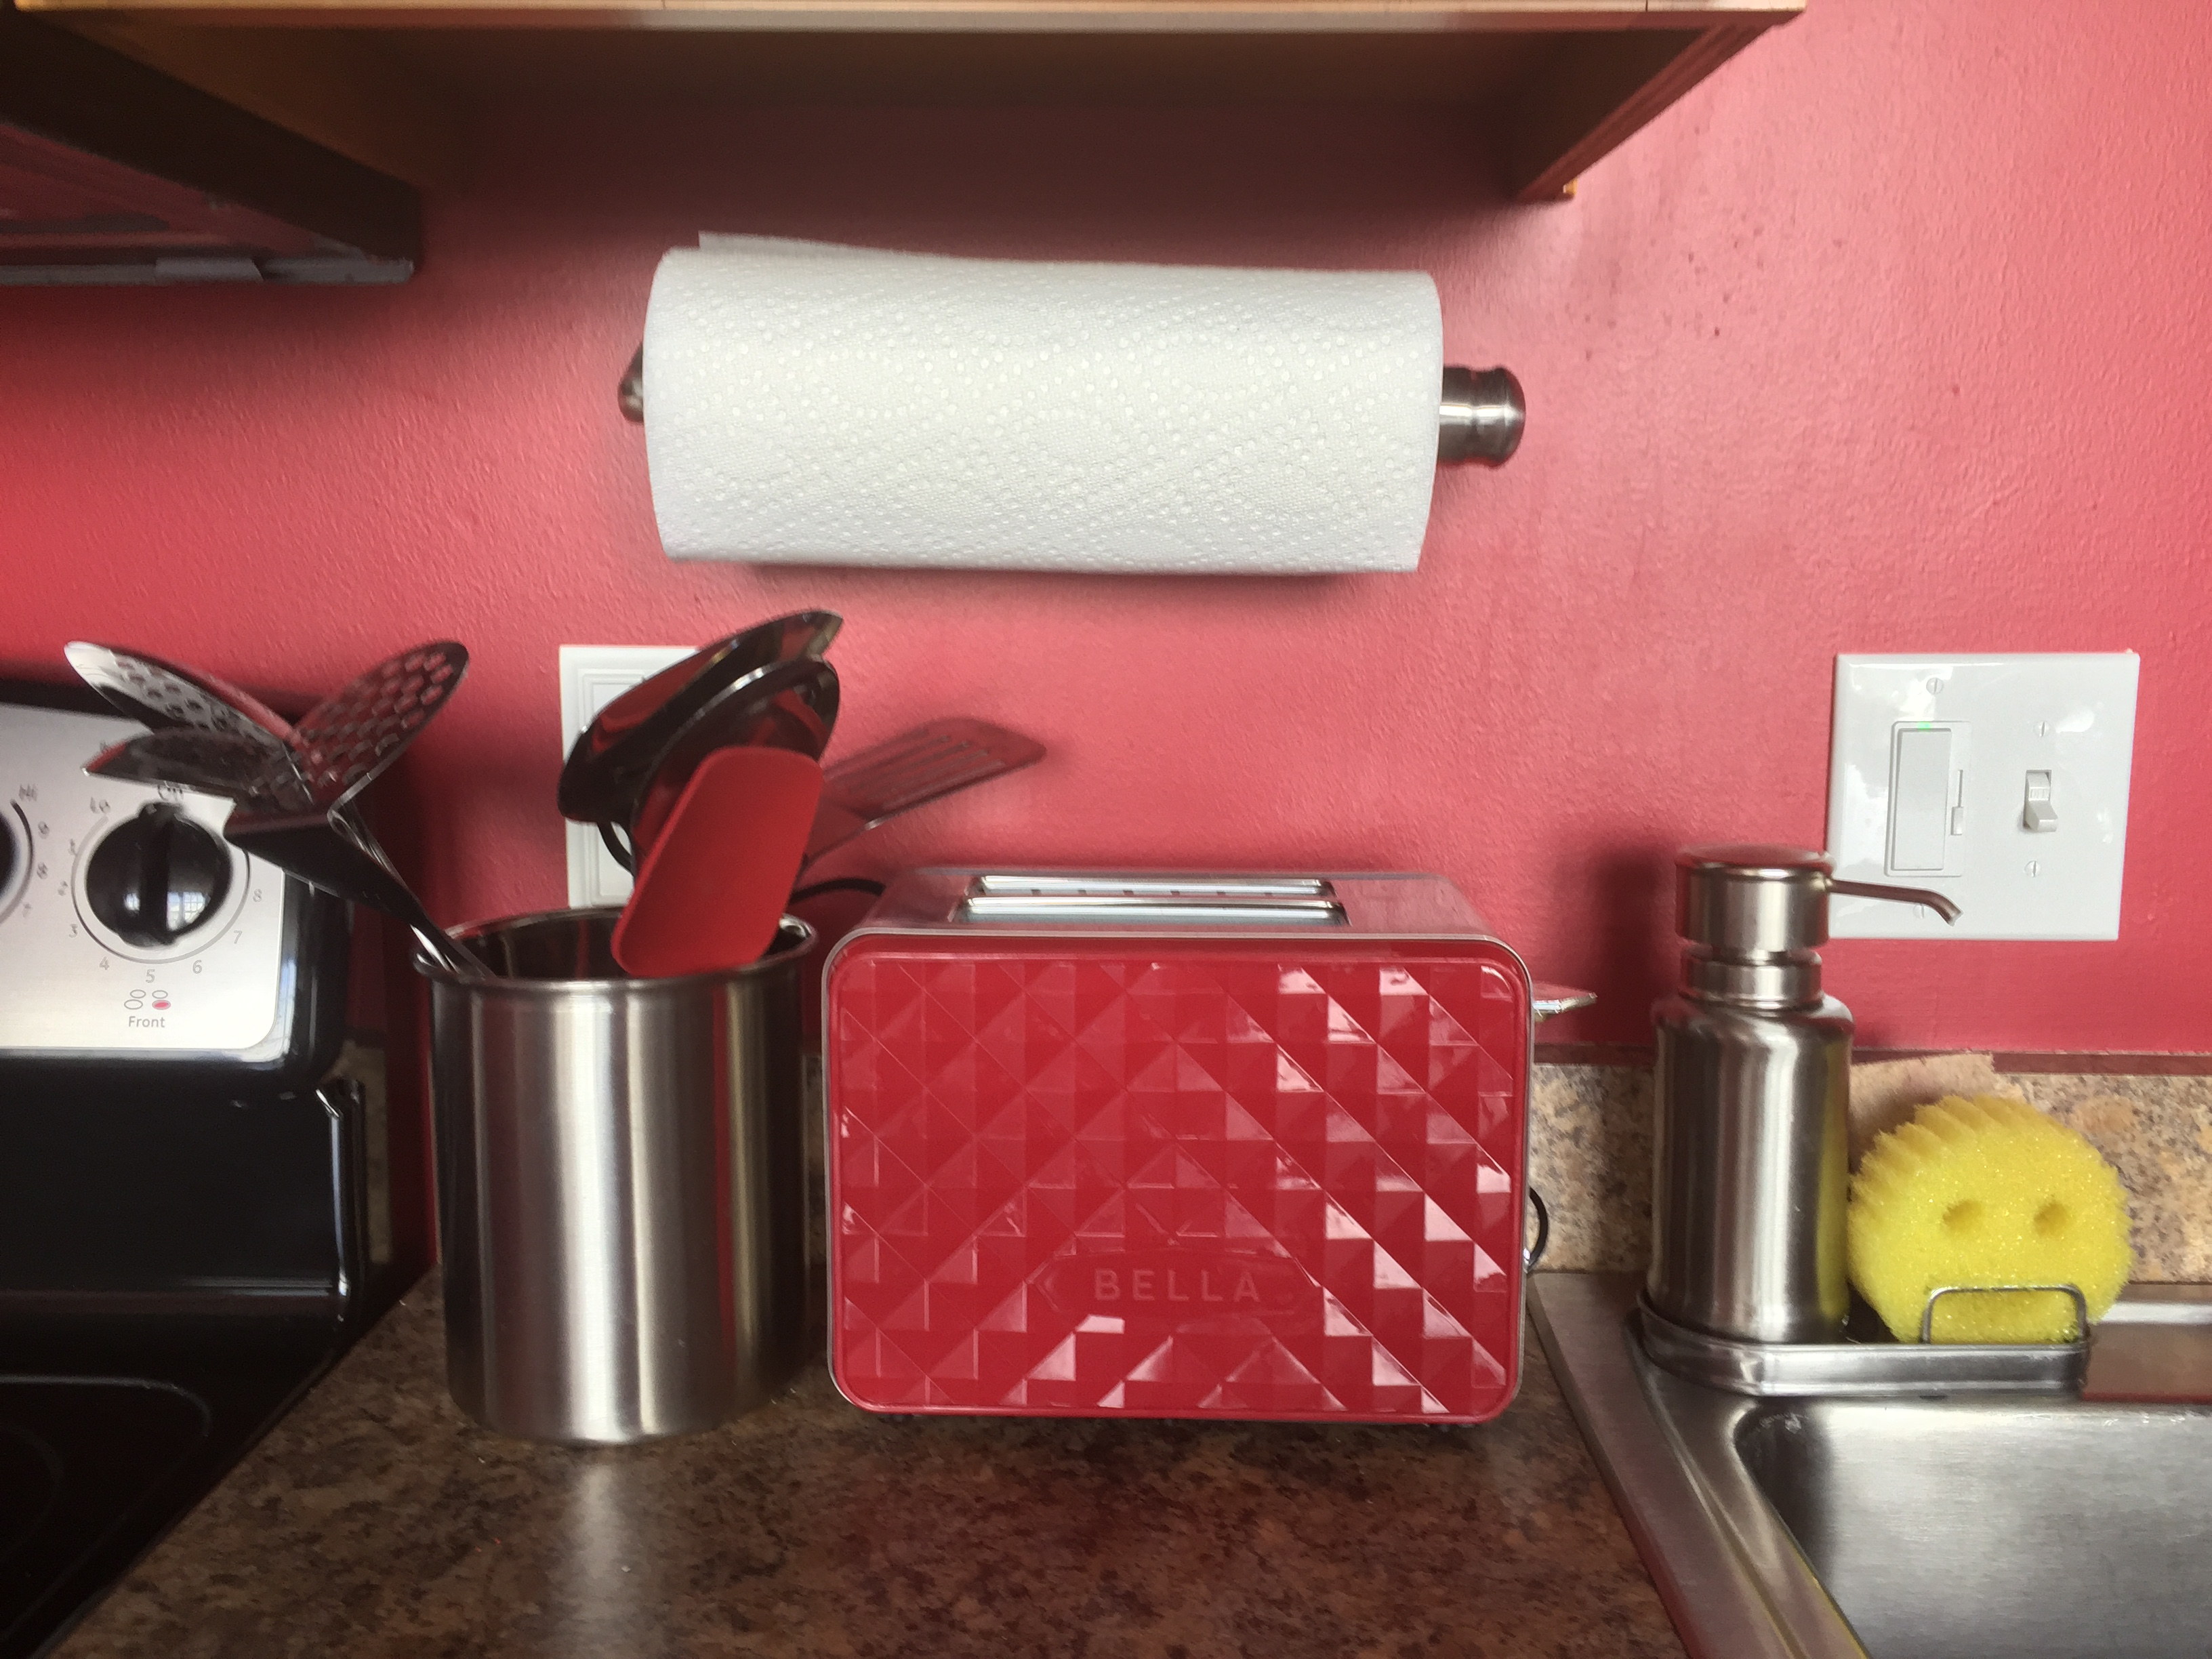 Toaster Cooking Utensils Paper Towels - Loft Reverie Amenities